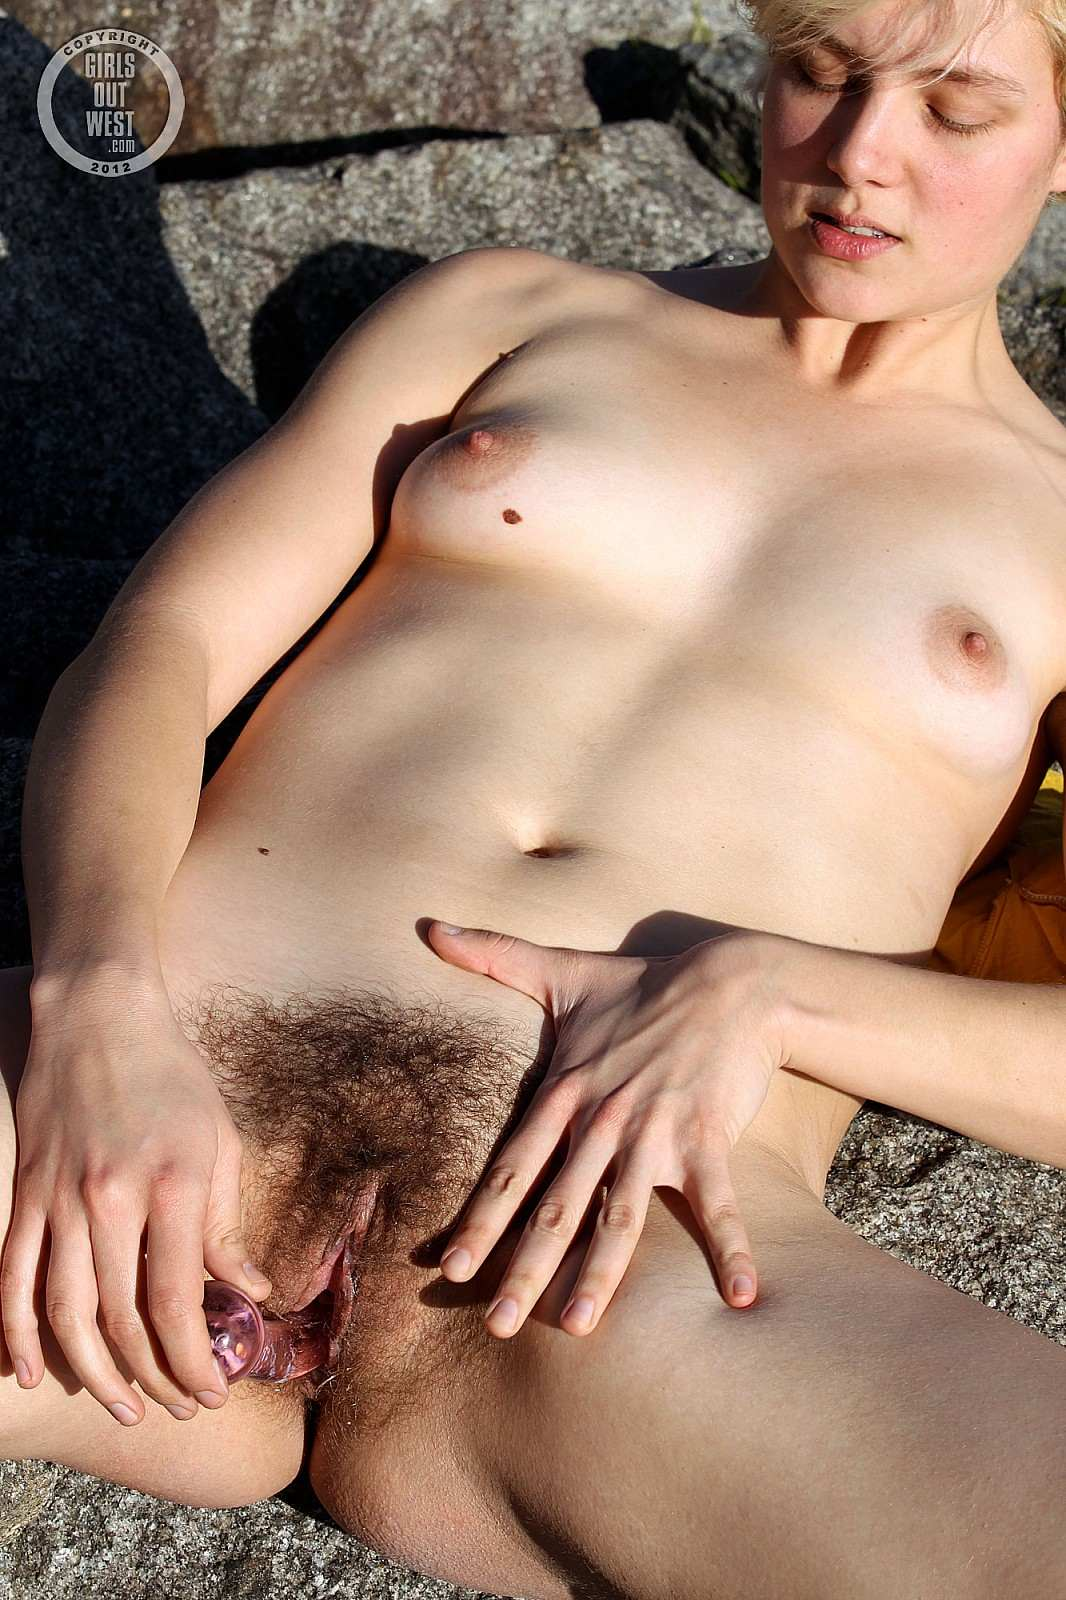 Girls out west amateur asian squirter inseminated 3